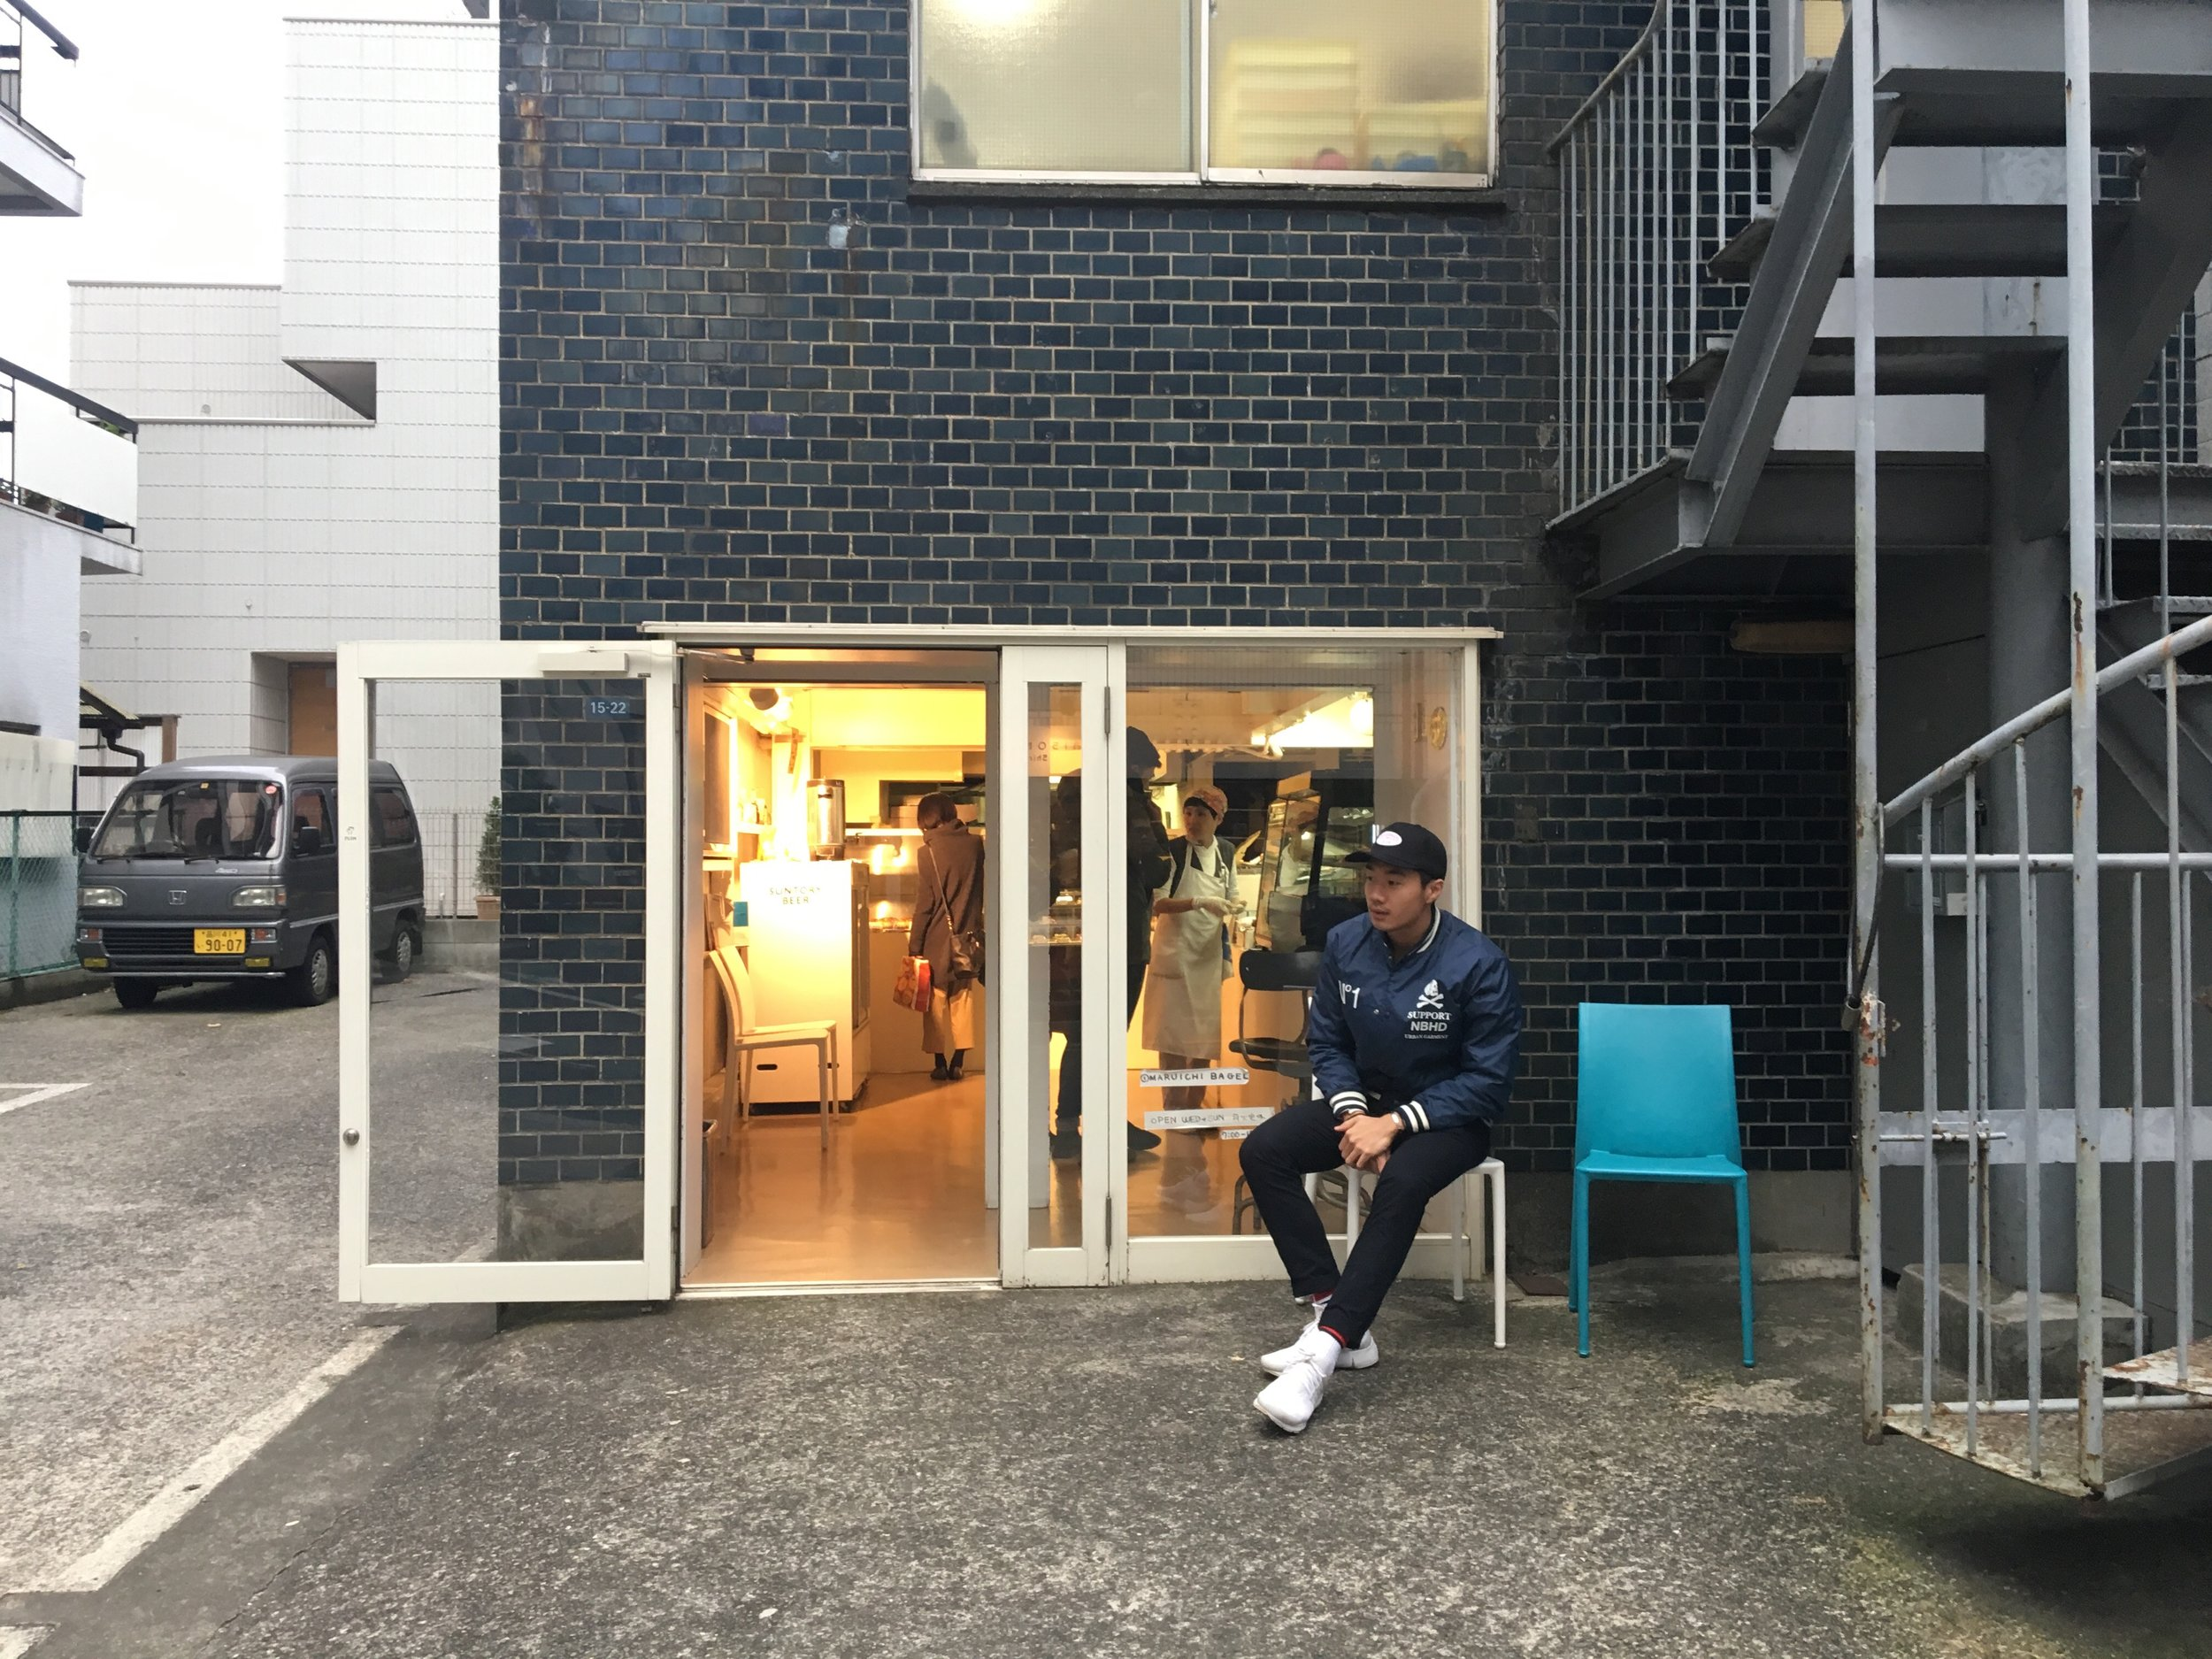 I feel this is the most legit bagel store in Tokyo ever and pretty damn sure the crew agrees it too. It's called Maruichi bagels     https://maps.google.com.sg/maps?oe=UTF-8&hl=en-sg&client=safari&um=1&ie=UTF-8&fb=1&gl=sg&entry=s&sa=X&ftid=0x60188ba7e14f4a7f:0x42129c56a4ece3b4&gmm=CgIgAQ%3D%3D